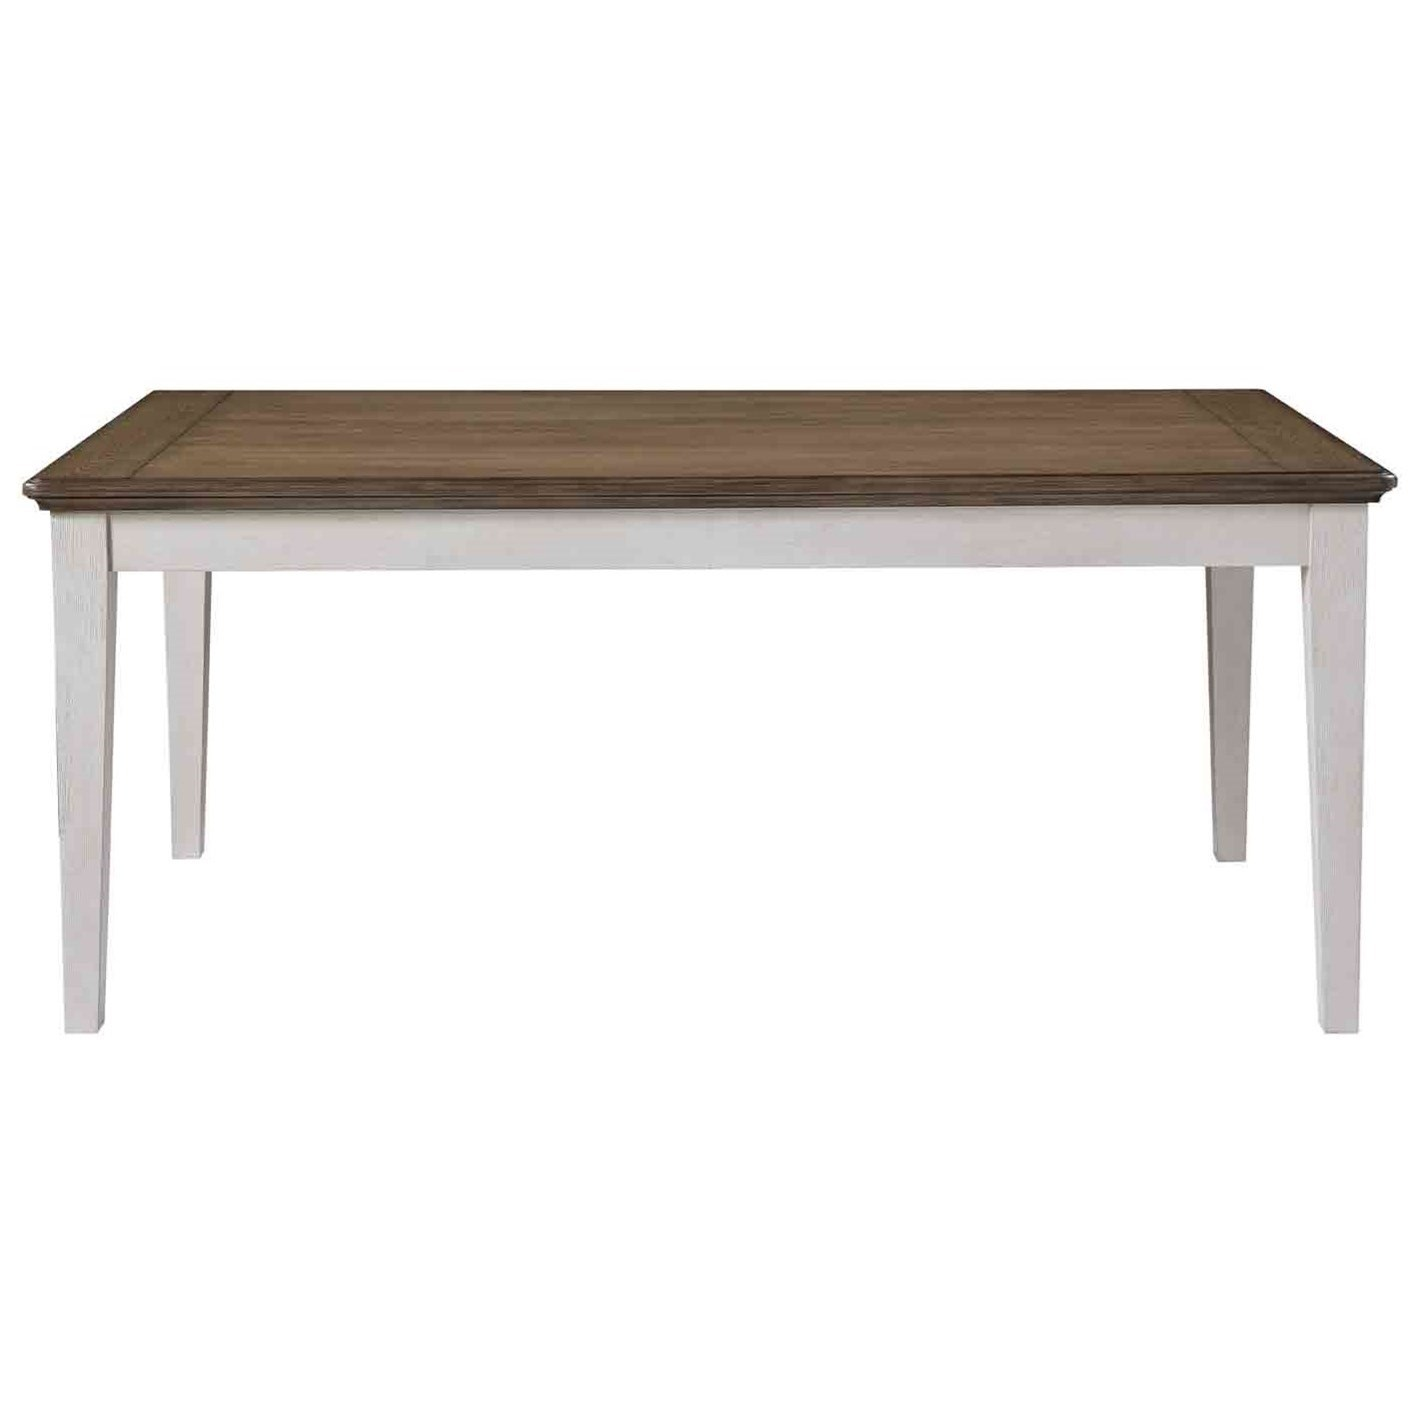 Pendleton Dining Table by Steve Silver at Walker's Furniture